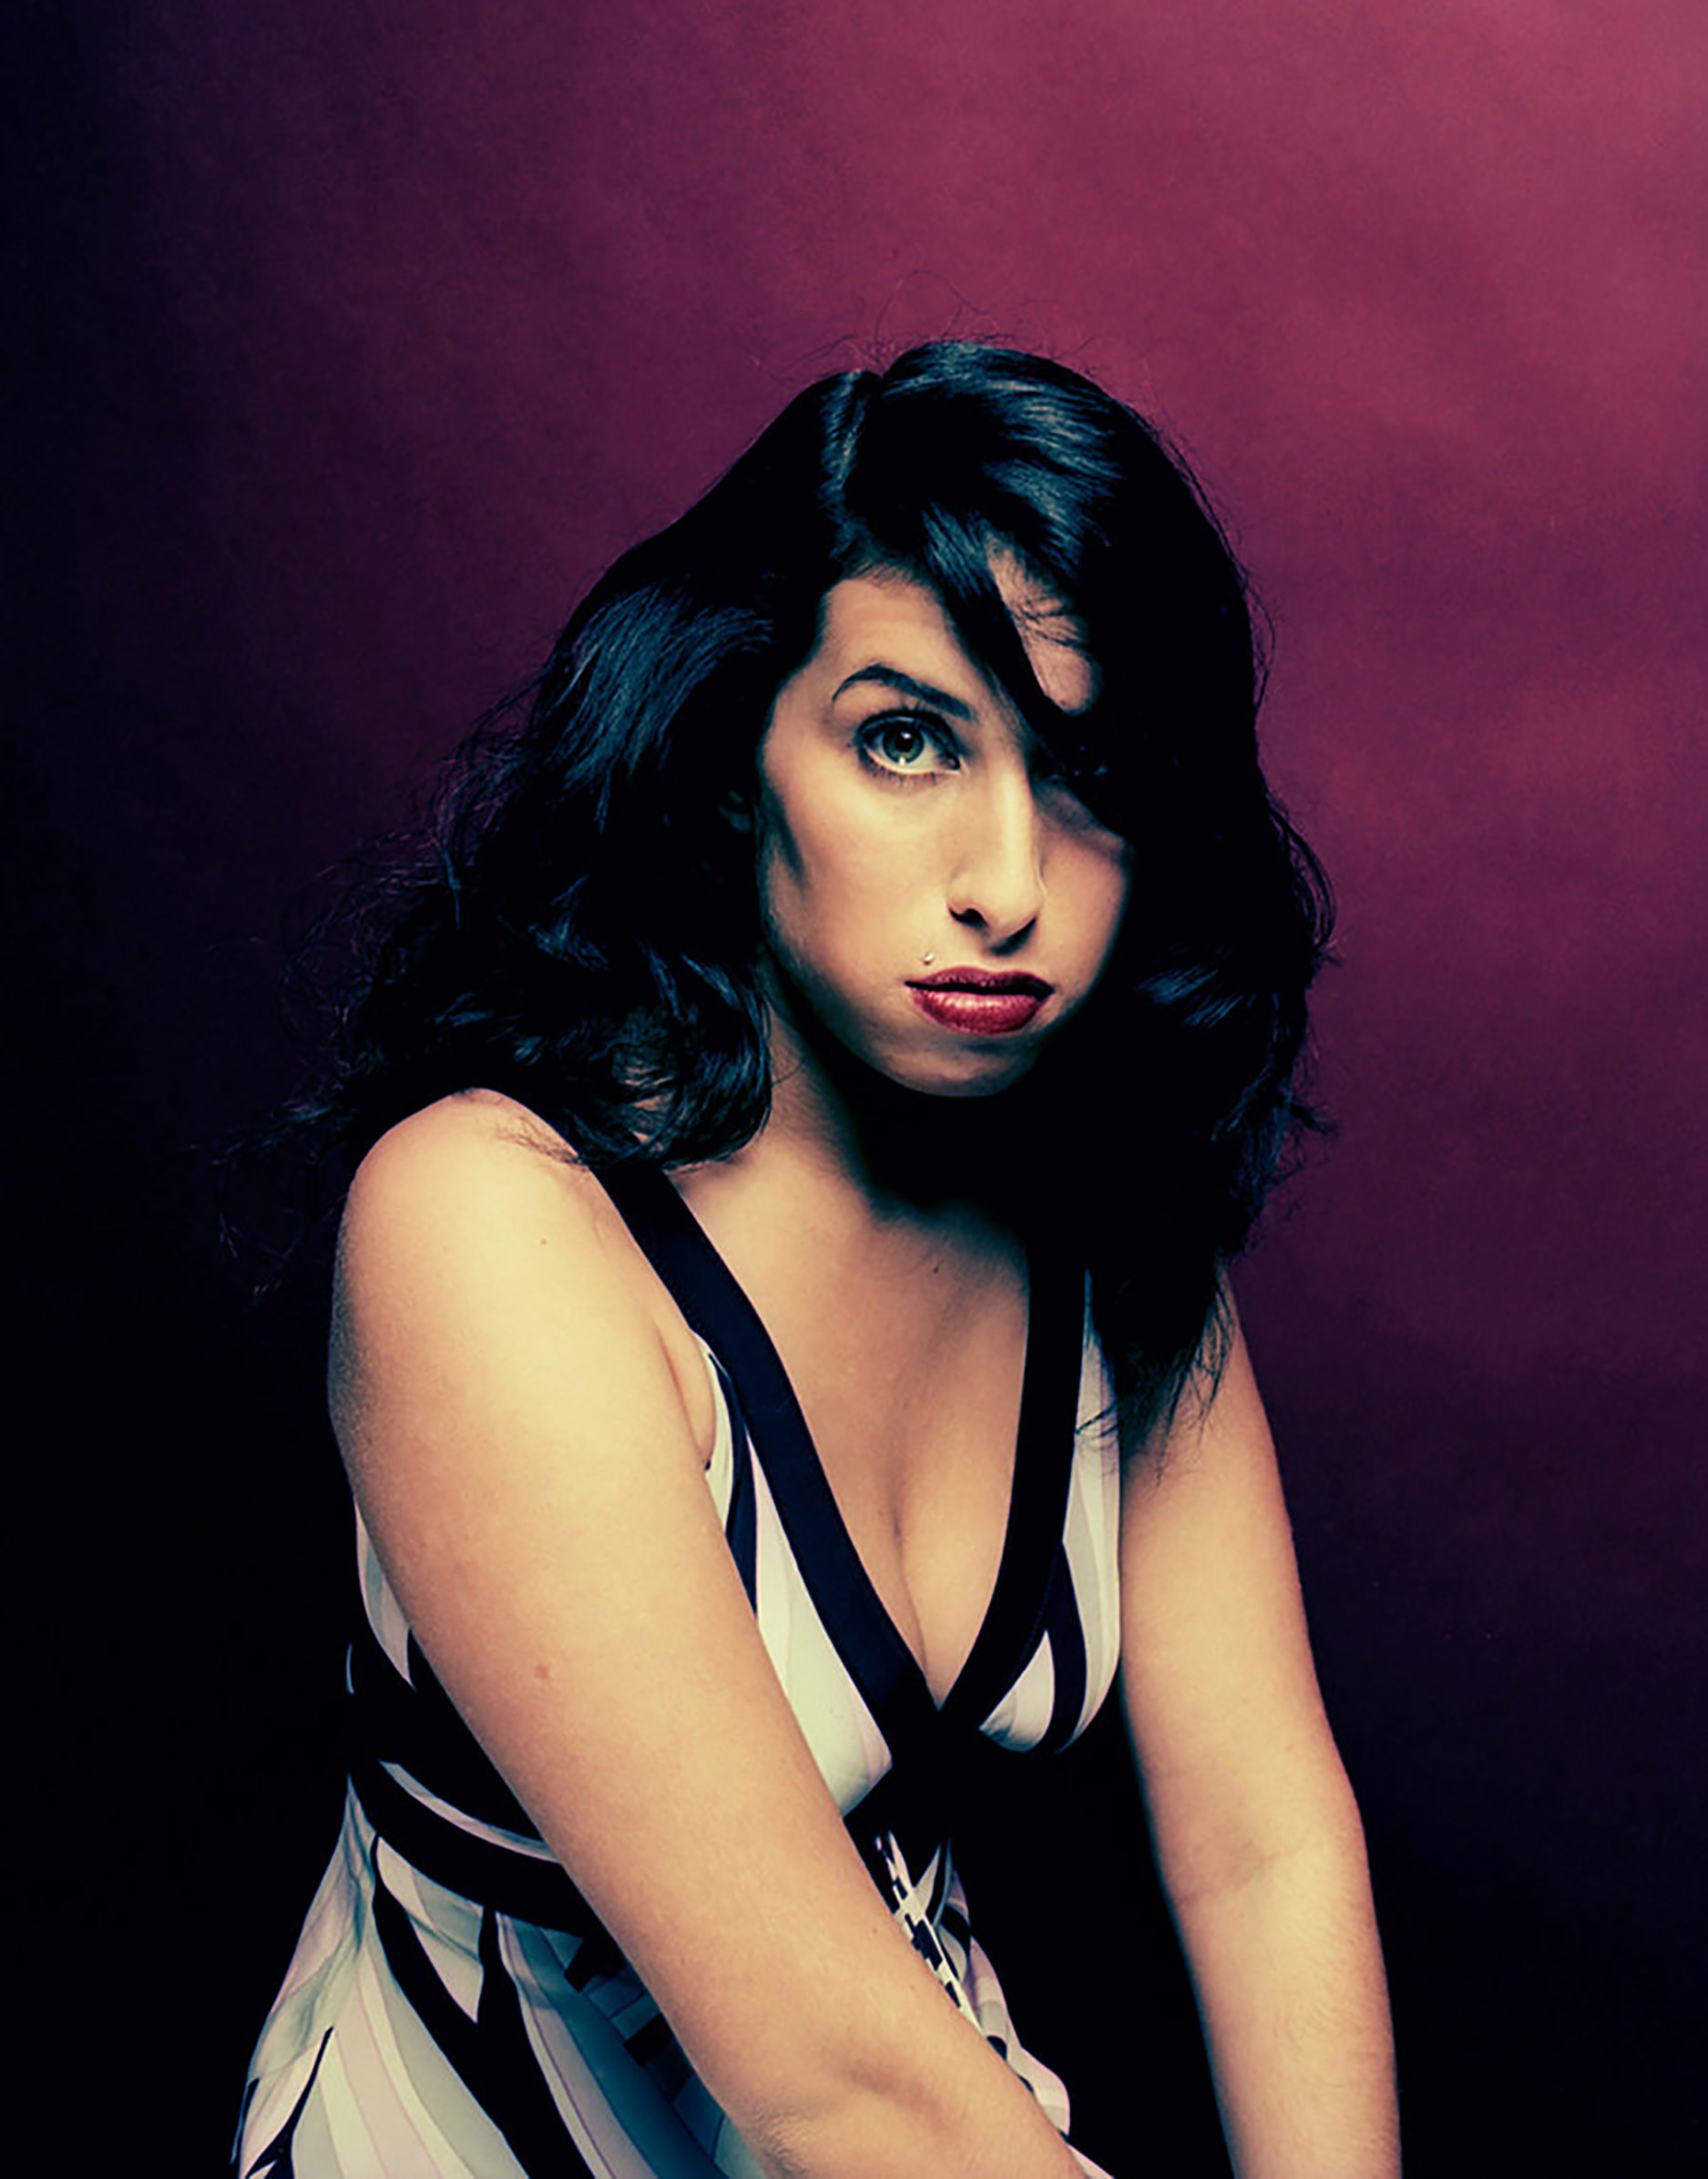 57e221113c59b02205433f45_Amy-Winehouse-cr-Phil-Knott-5981-2016-billboard-1240